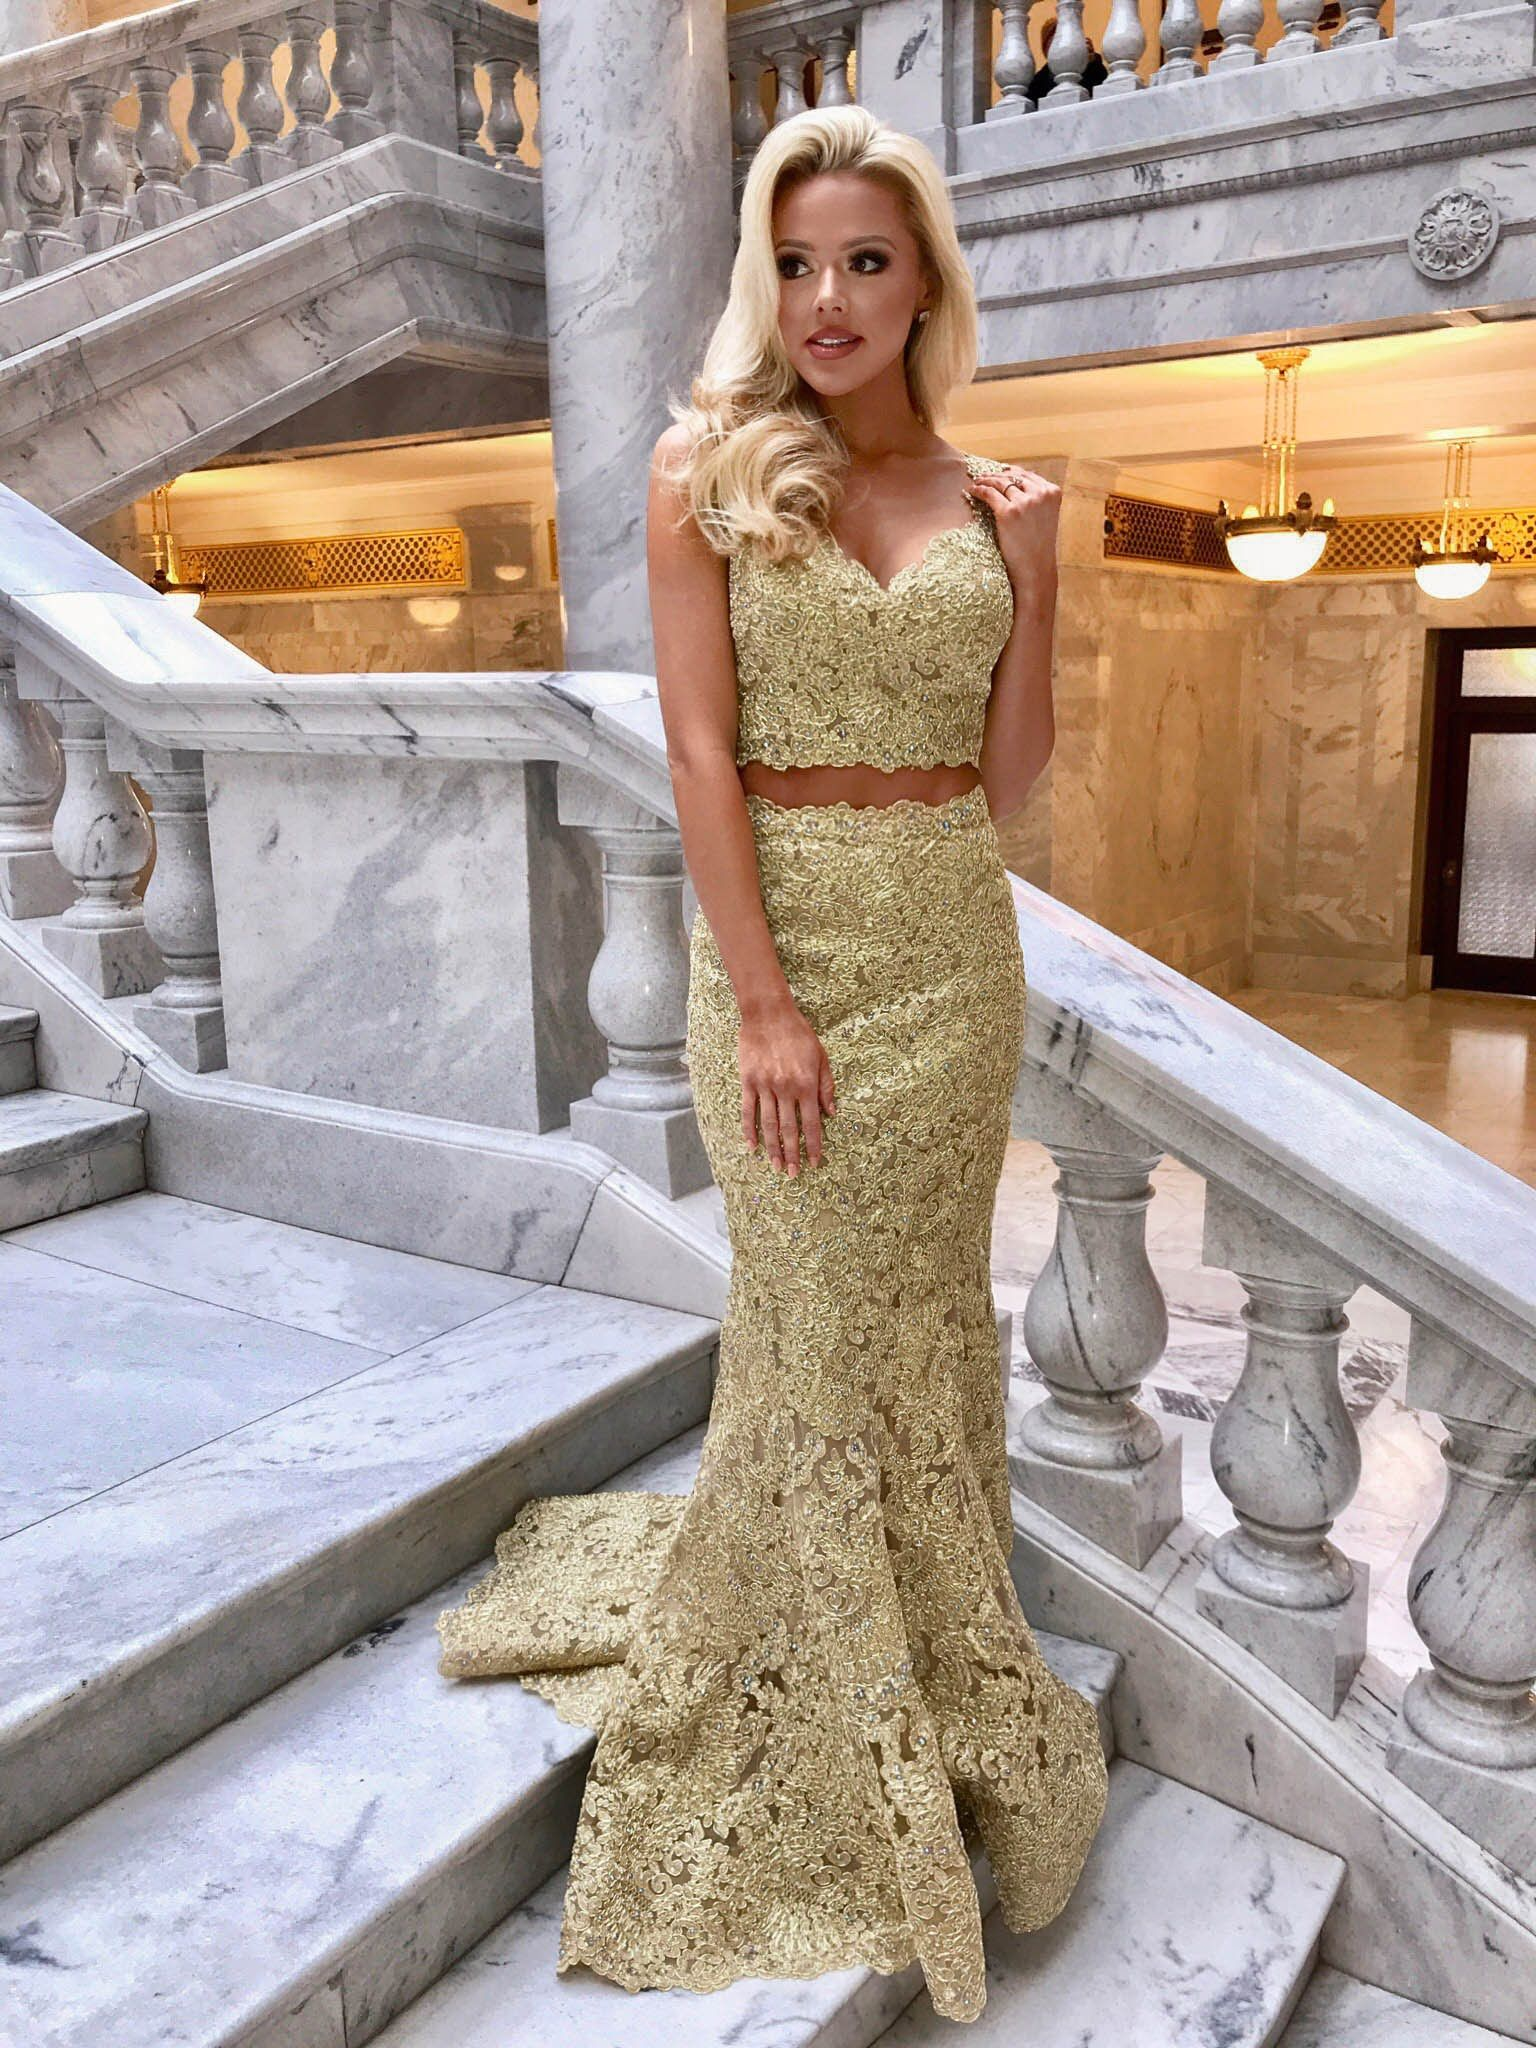 b5df1499d67 Sherri Hill Gold 2 Piece Lace Fitted Dress Ypsilon Dresses Prom Pageant  Evening Wear Homecoming Sweethearts School Dance Dress Special Occasion  Formal ...